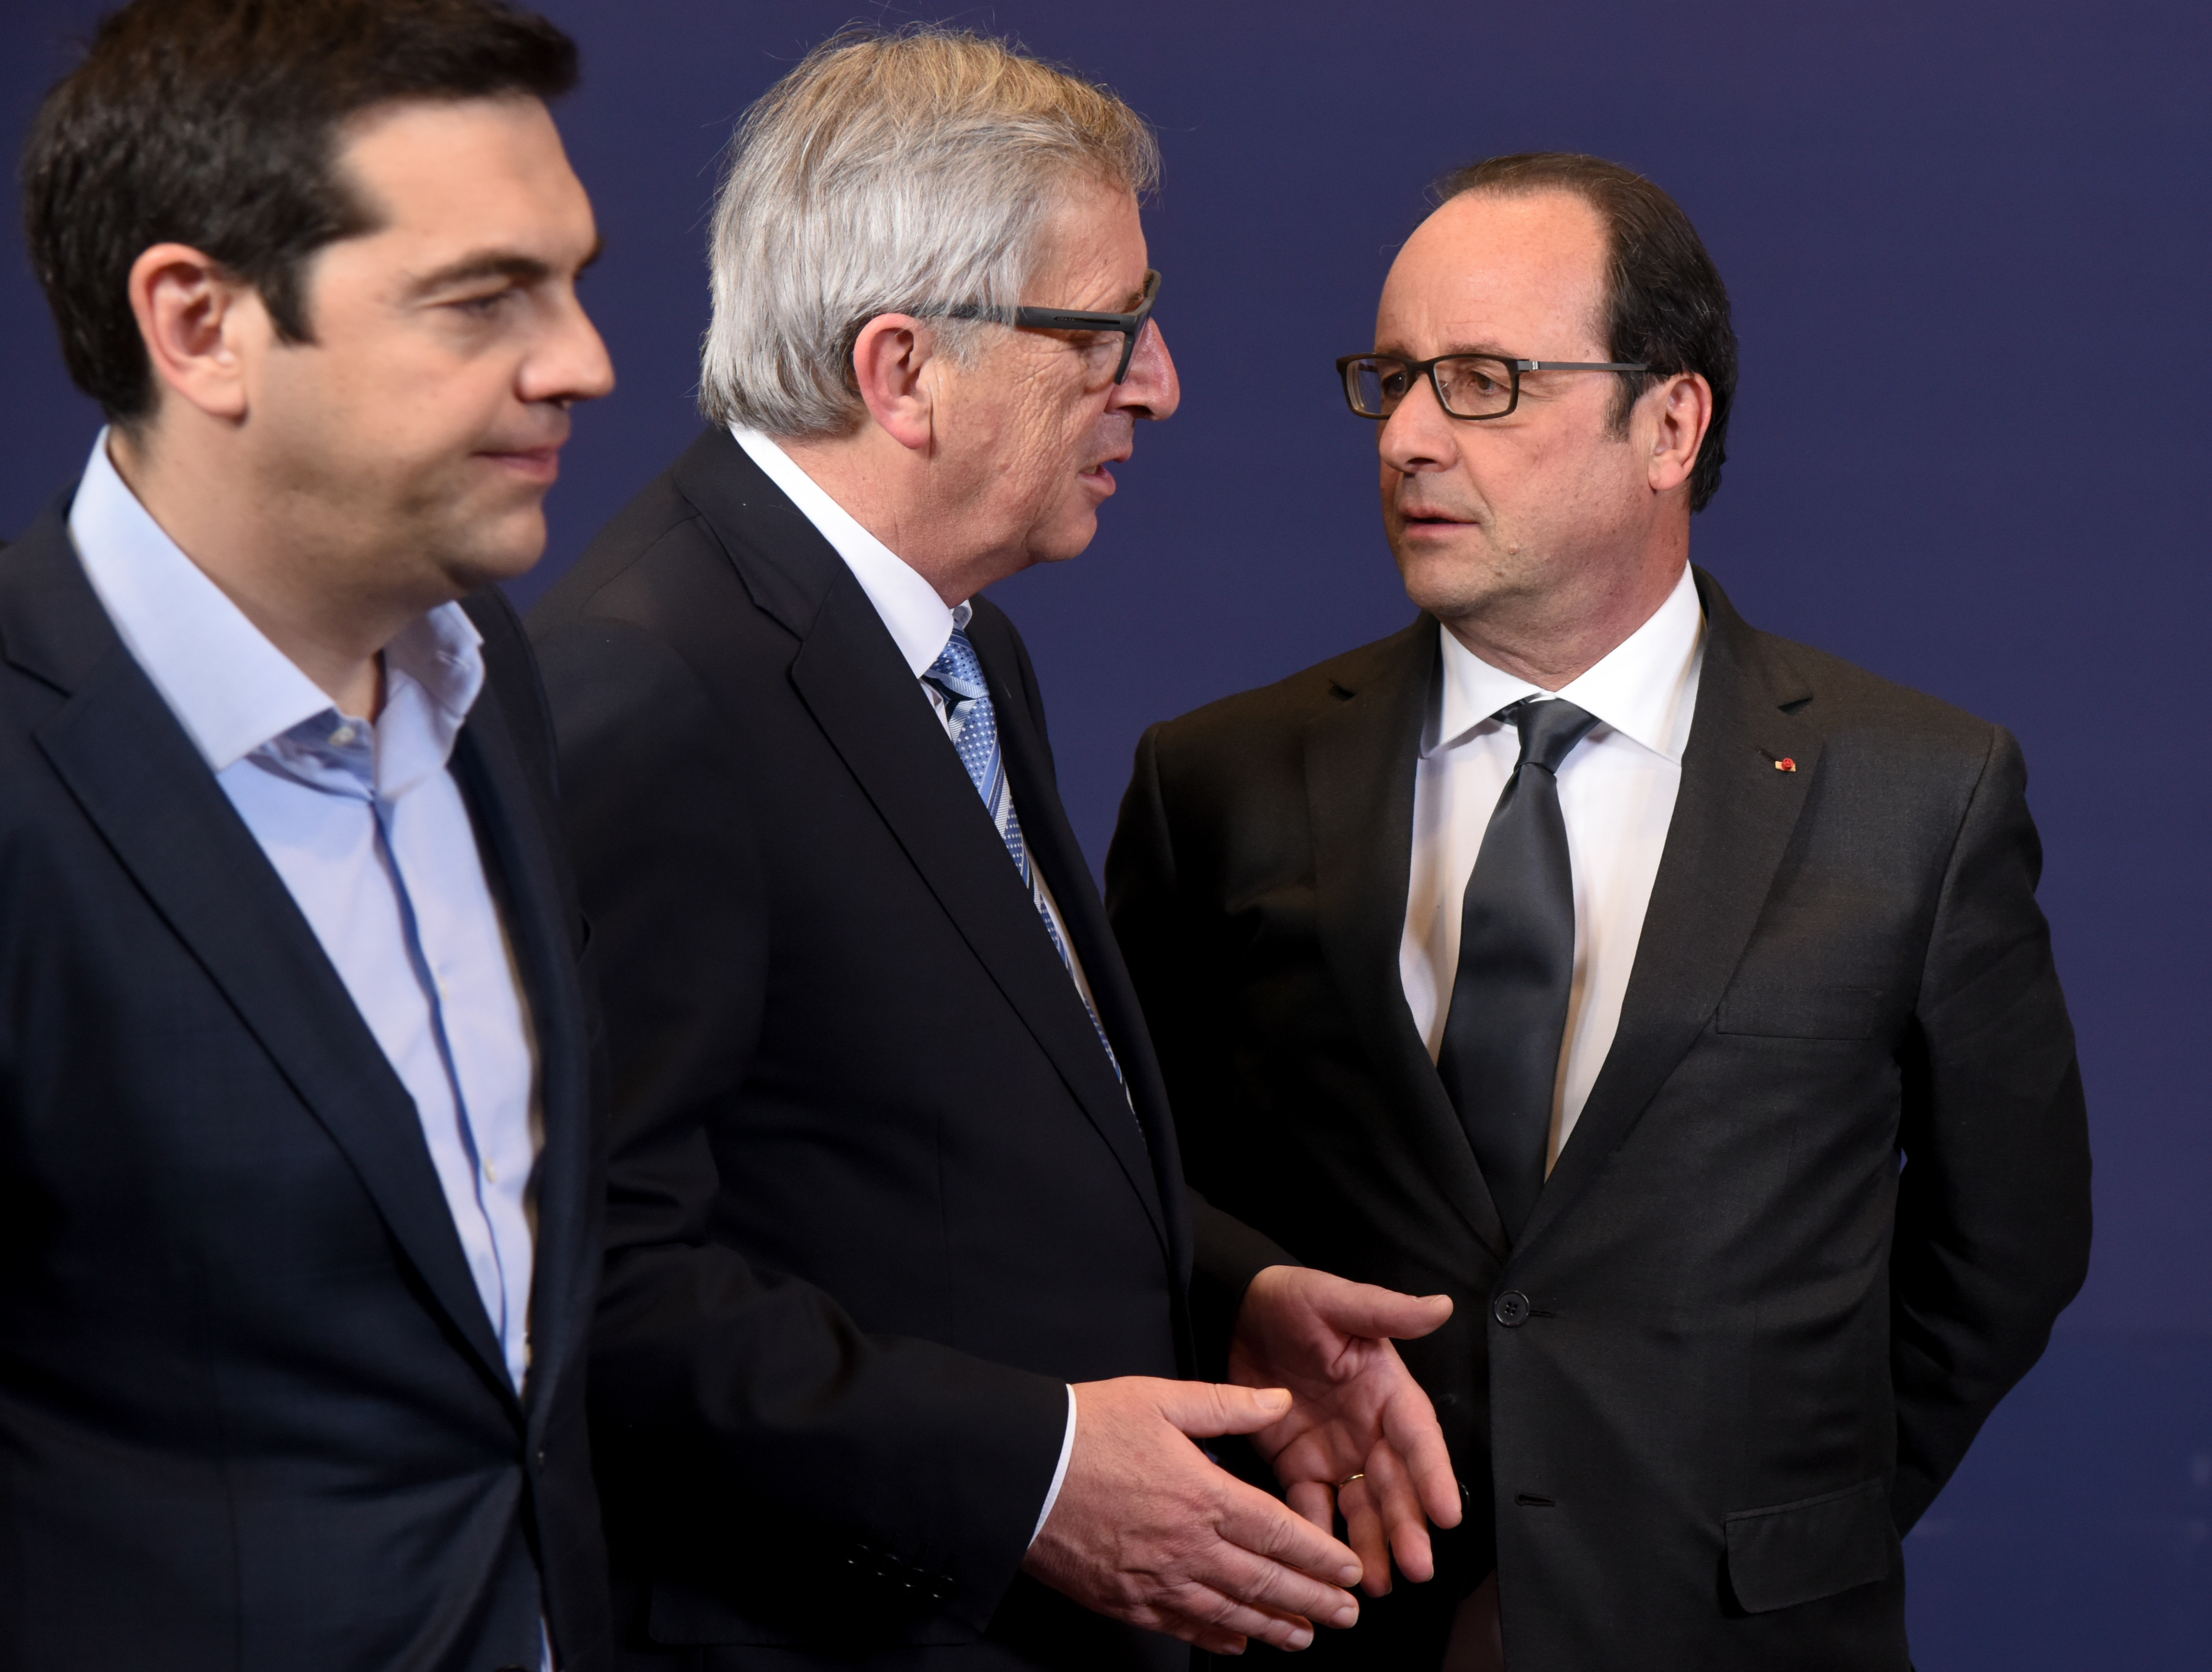 Discussion between François Hollande, President of the French Republic, on the right, and Jean-Claude Juncker, in the centre, in the presence of Alexis Tsipras, Greek Prime Minister